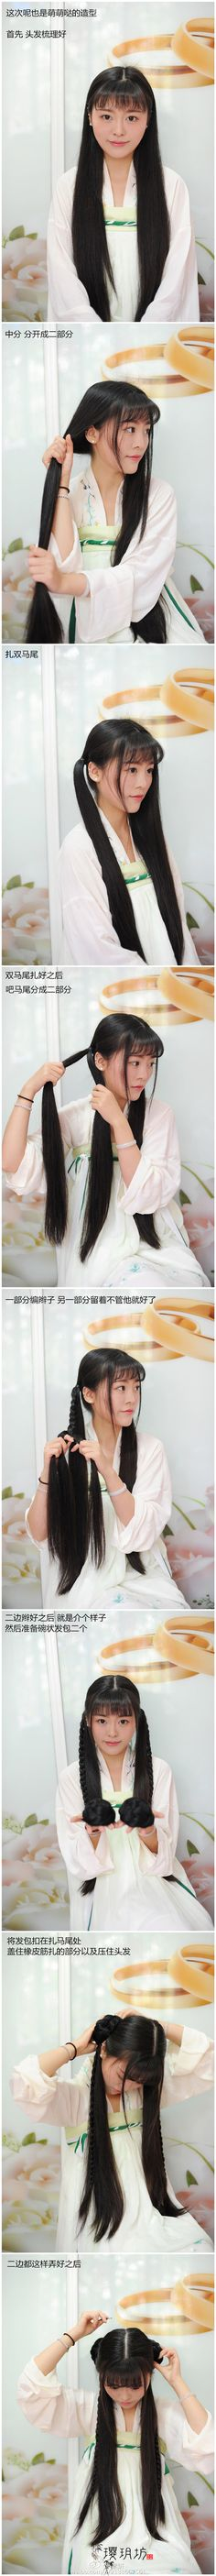 Keep Your Hair With These Simple Thinning Hair Tips Medieval Hairstyles, Cute Hairstyles, Braided Hairstyles, Goddess Makeup, Traditional Hairstyle, Japanese Hairstyle, Hair Reference, Hair Art, Hair Designs